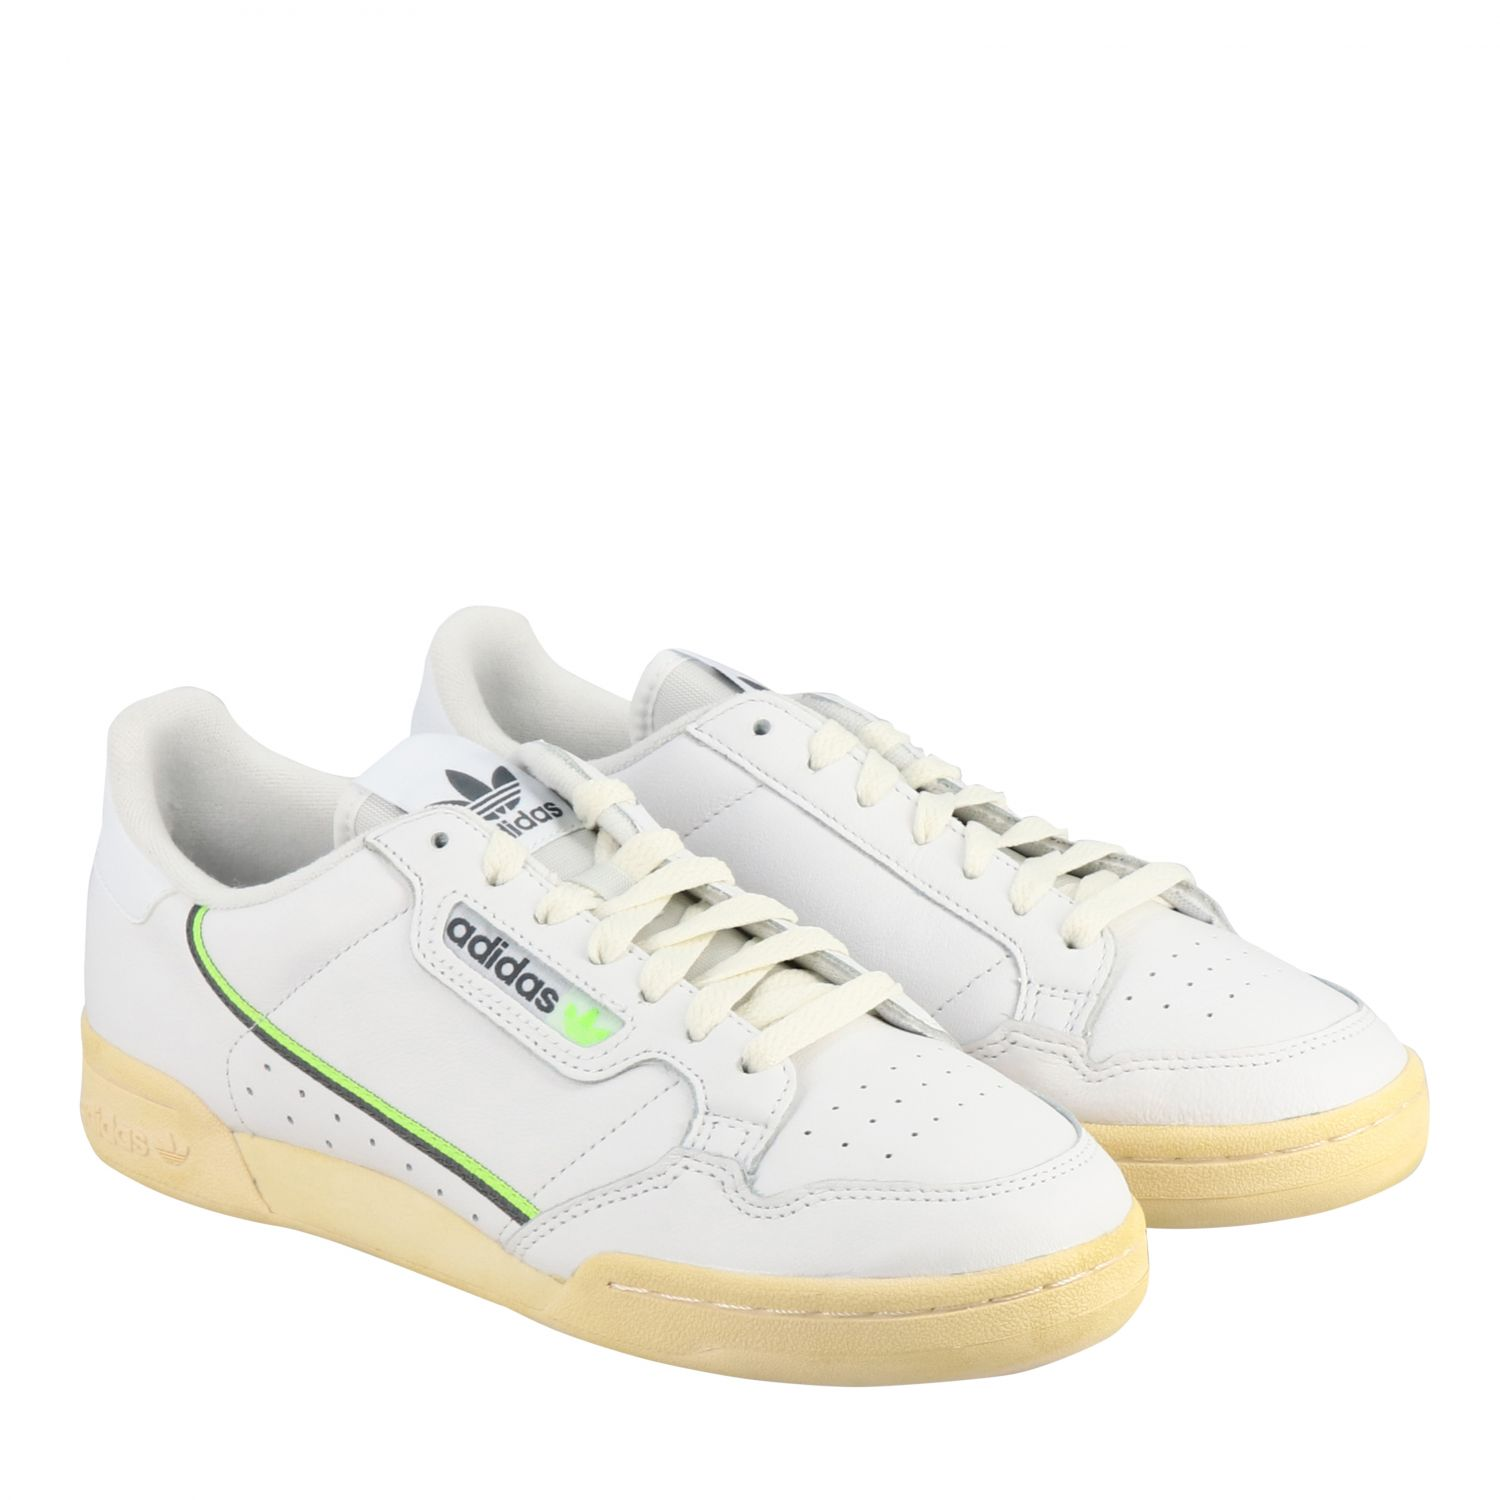 Sneakers Adidas Originals: Sneakers Continental 80 Adidas Originals in pelle bianco 2